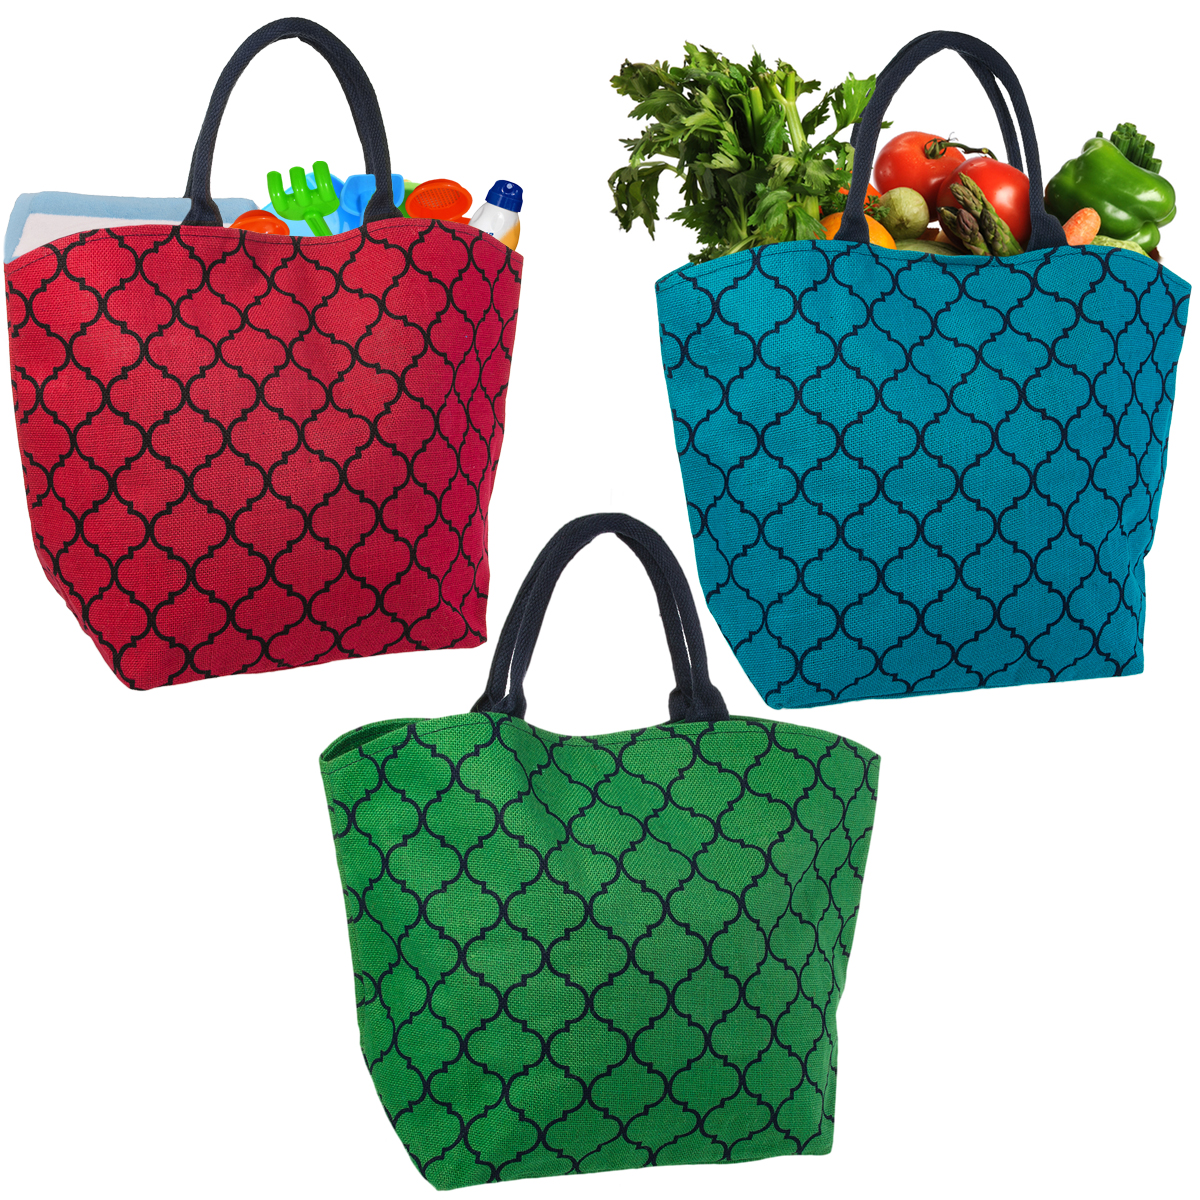 Set of 3 Reusable Shopping Bags Large Burlap Grocery Farmers Market Tote With Handles